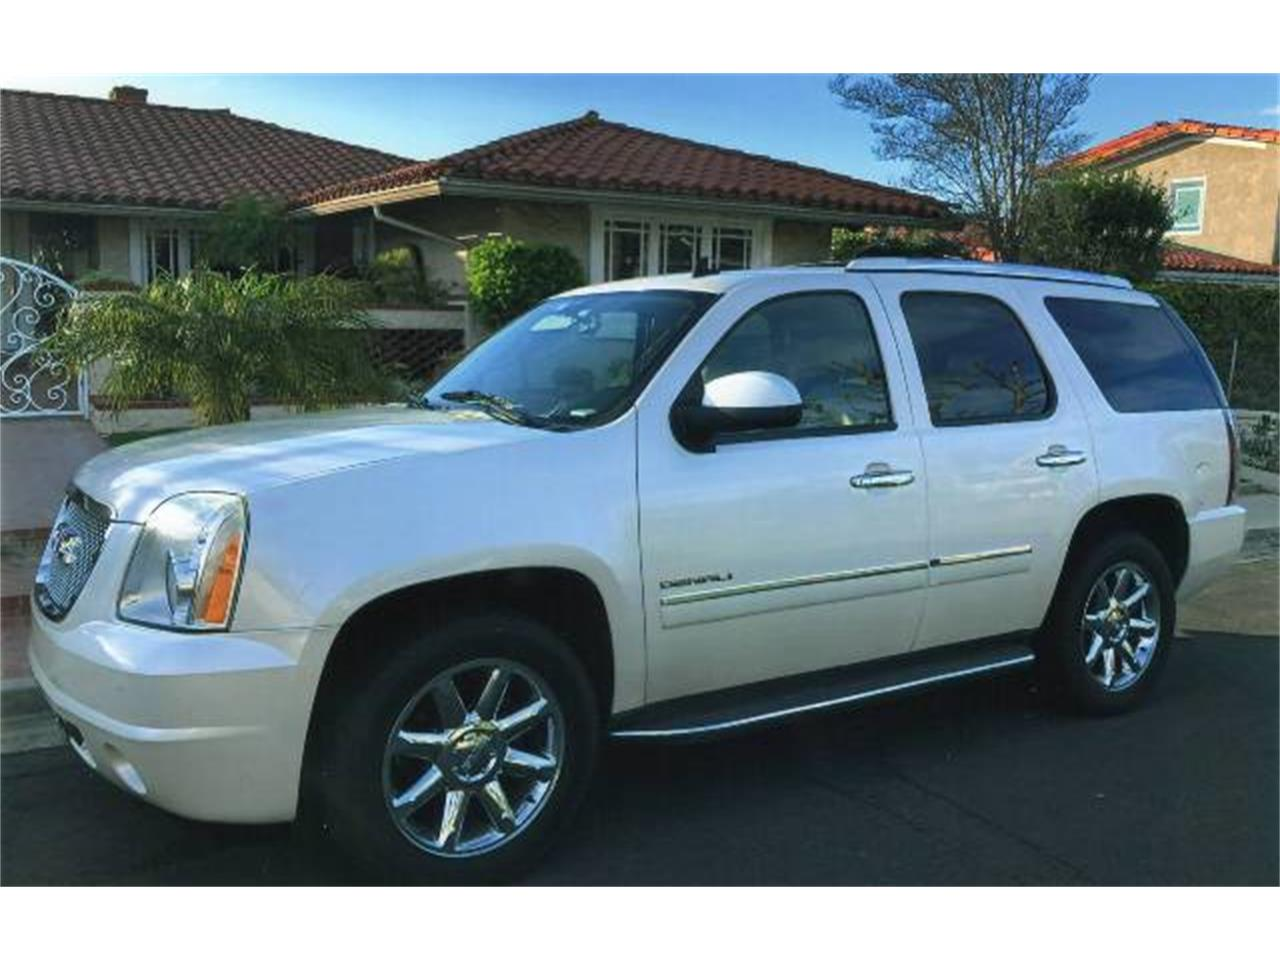 for sale at auction 2013 gmc denali in palm springs, california cars - palm springs, ca at geebo